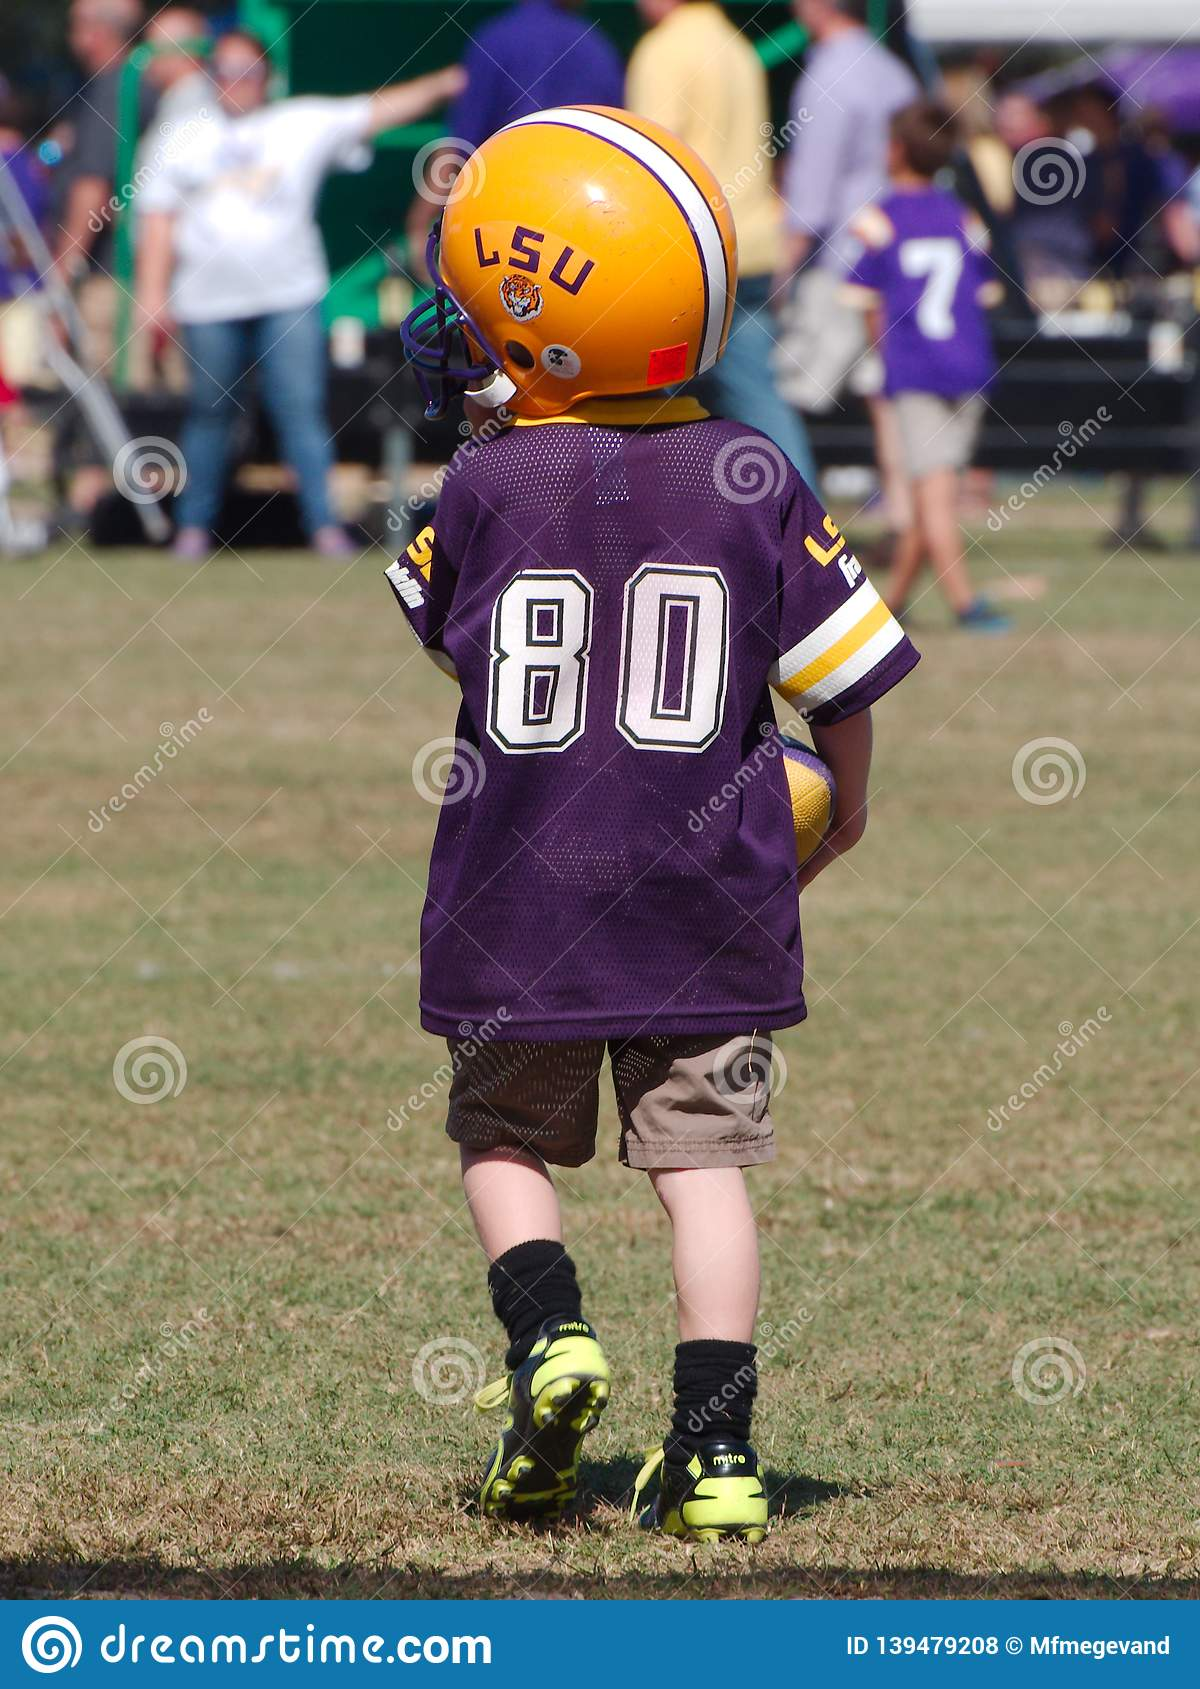 Child tailgating during an LSU football game